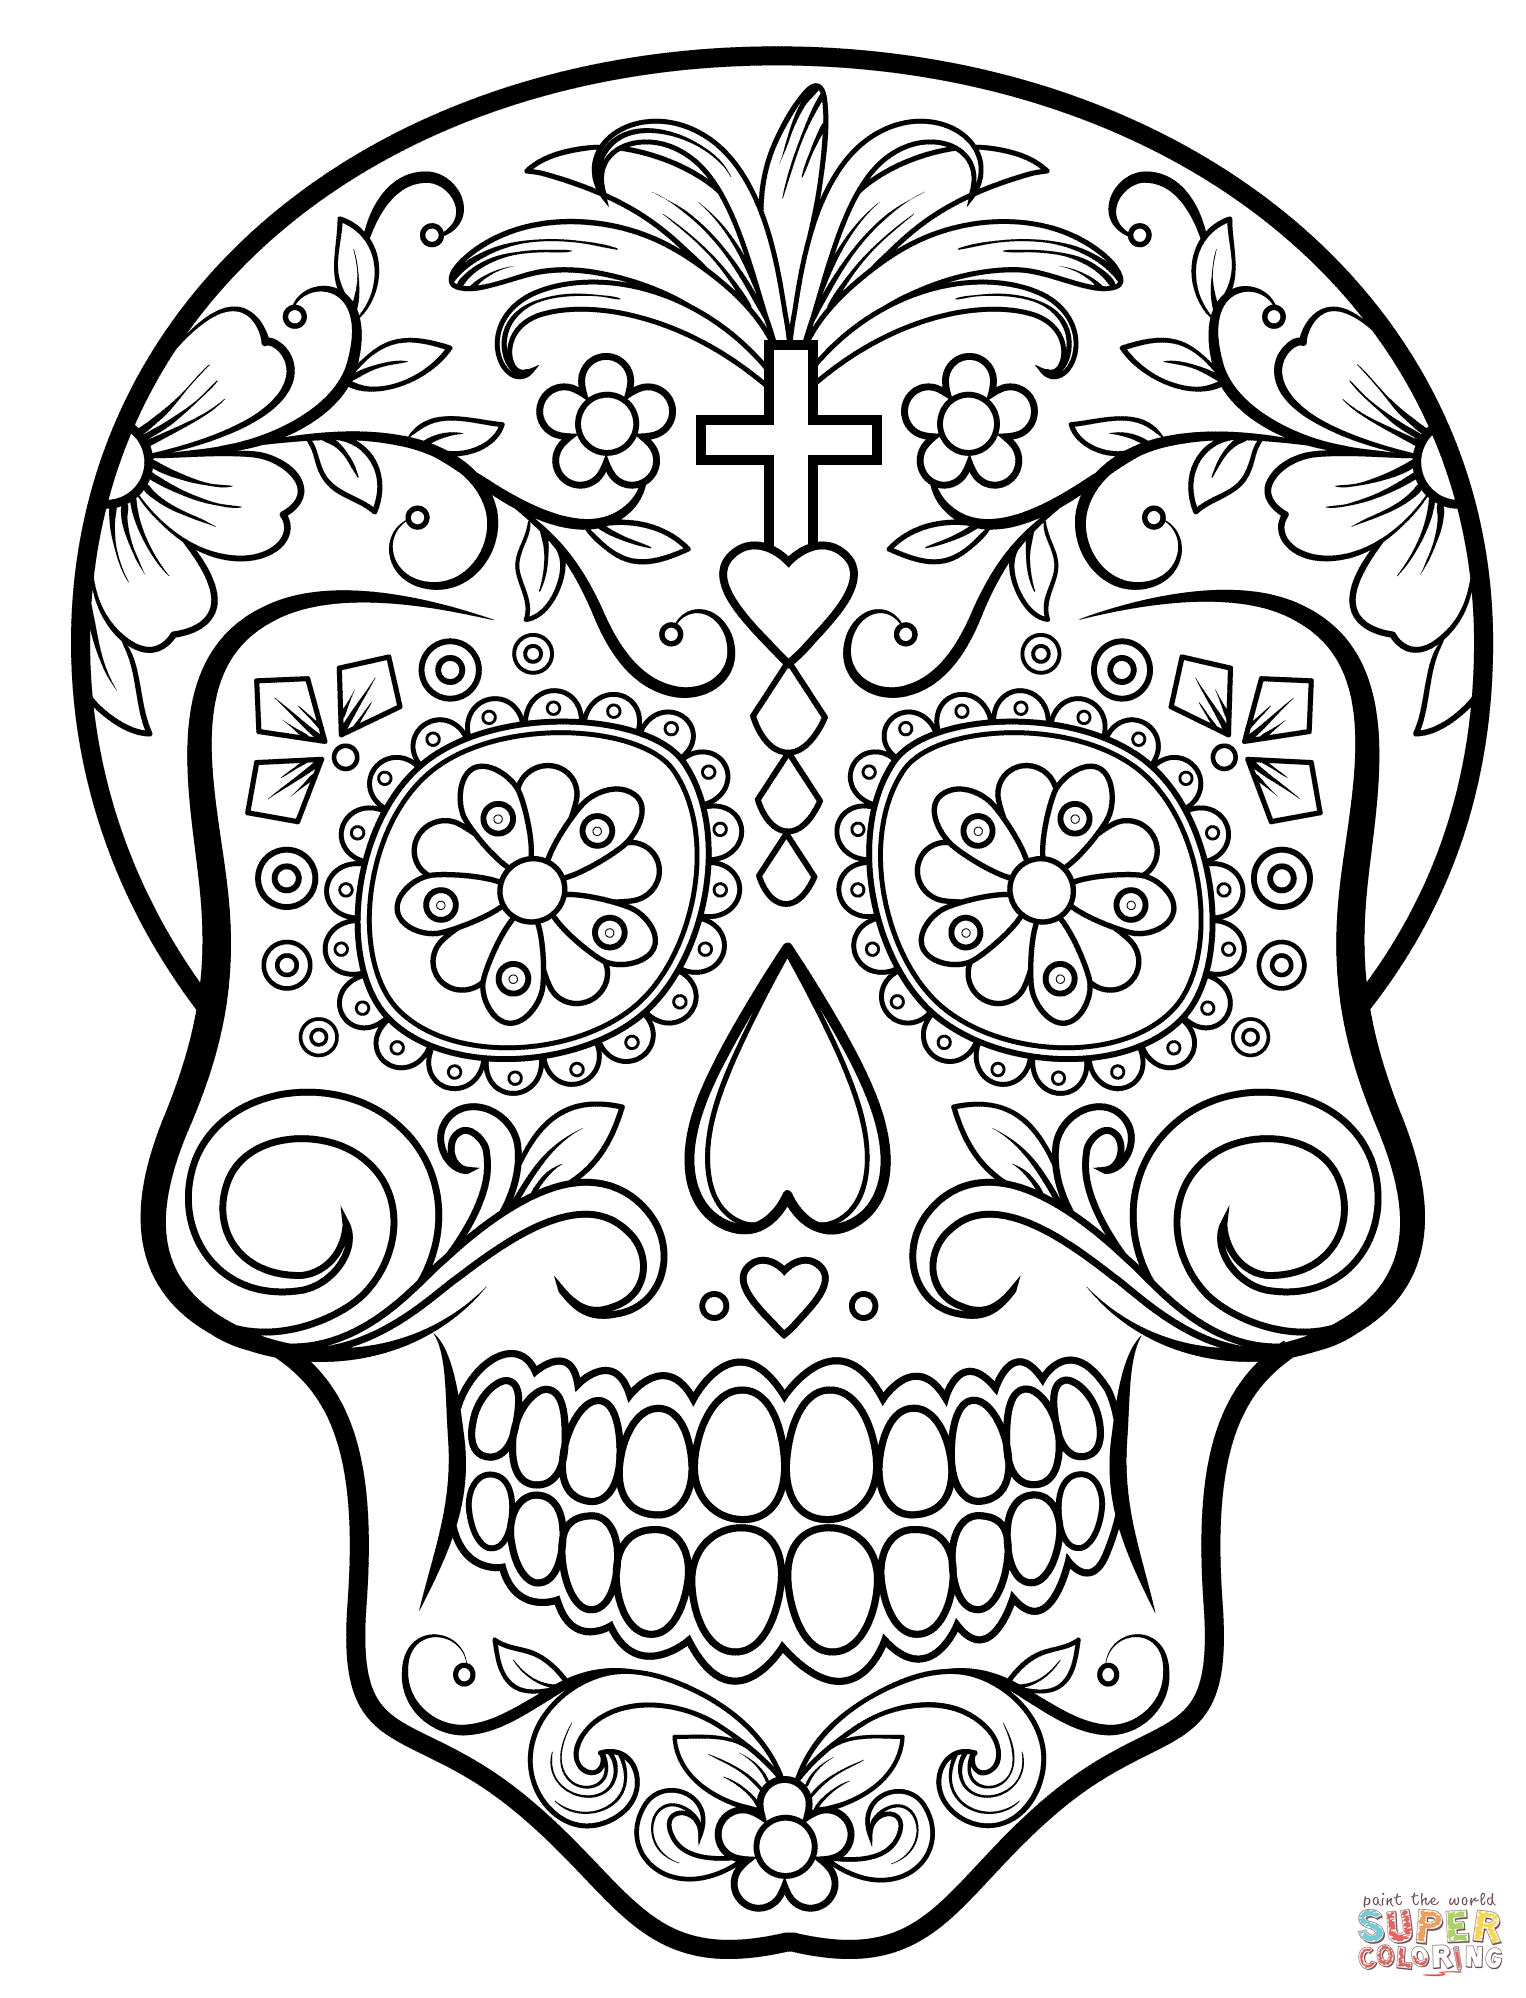 day of the dead skull coloring page day of the dead skull coloring pages free printable of the skull day coloring page dead